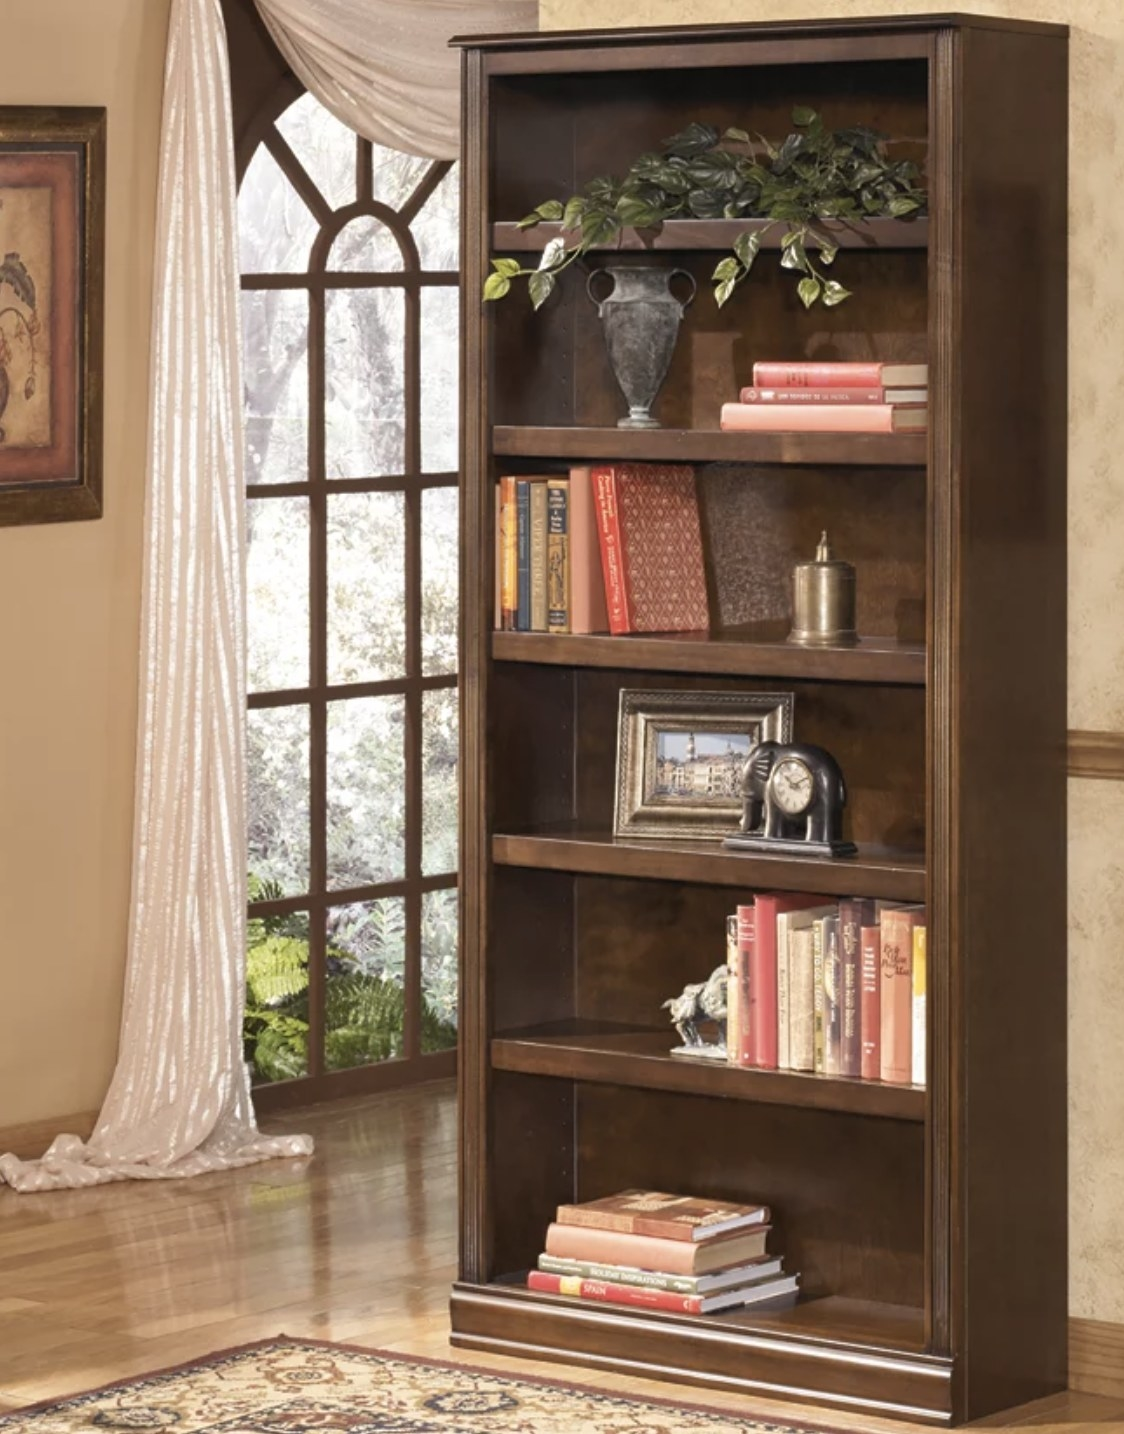 A wooden bookcase